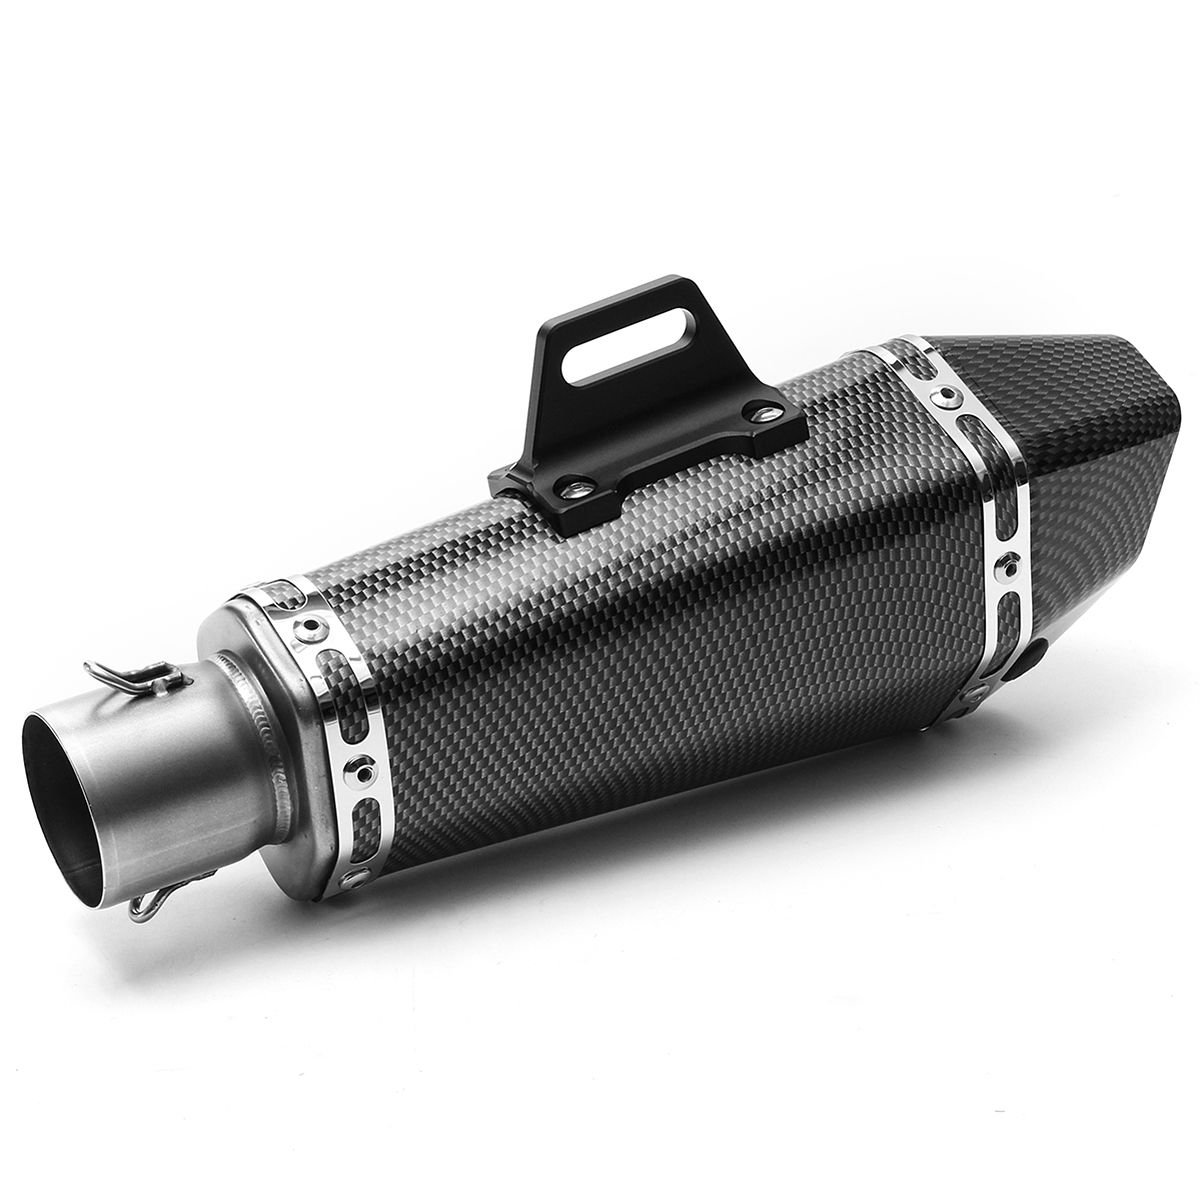 Mayitr 36-51mm Motorcycle Aluminum Stainless Steel Pipe Exhaust Muffler Tip Pipe Durable for Yamaha YZF R1 stylish stainless steel car exhaust pipe muffler tip